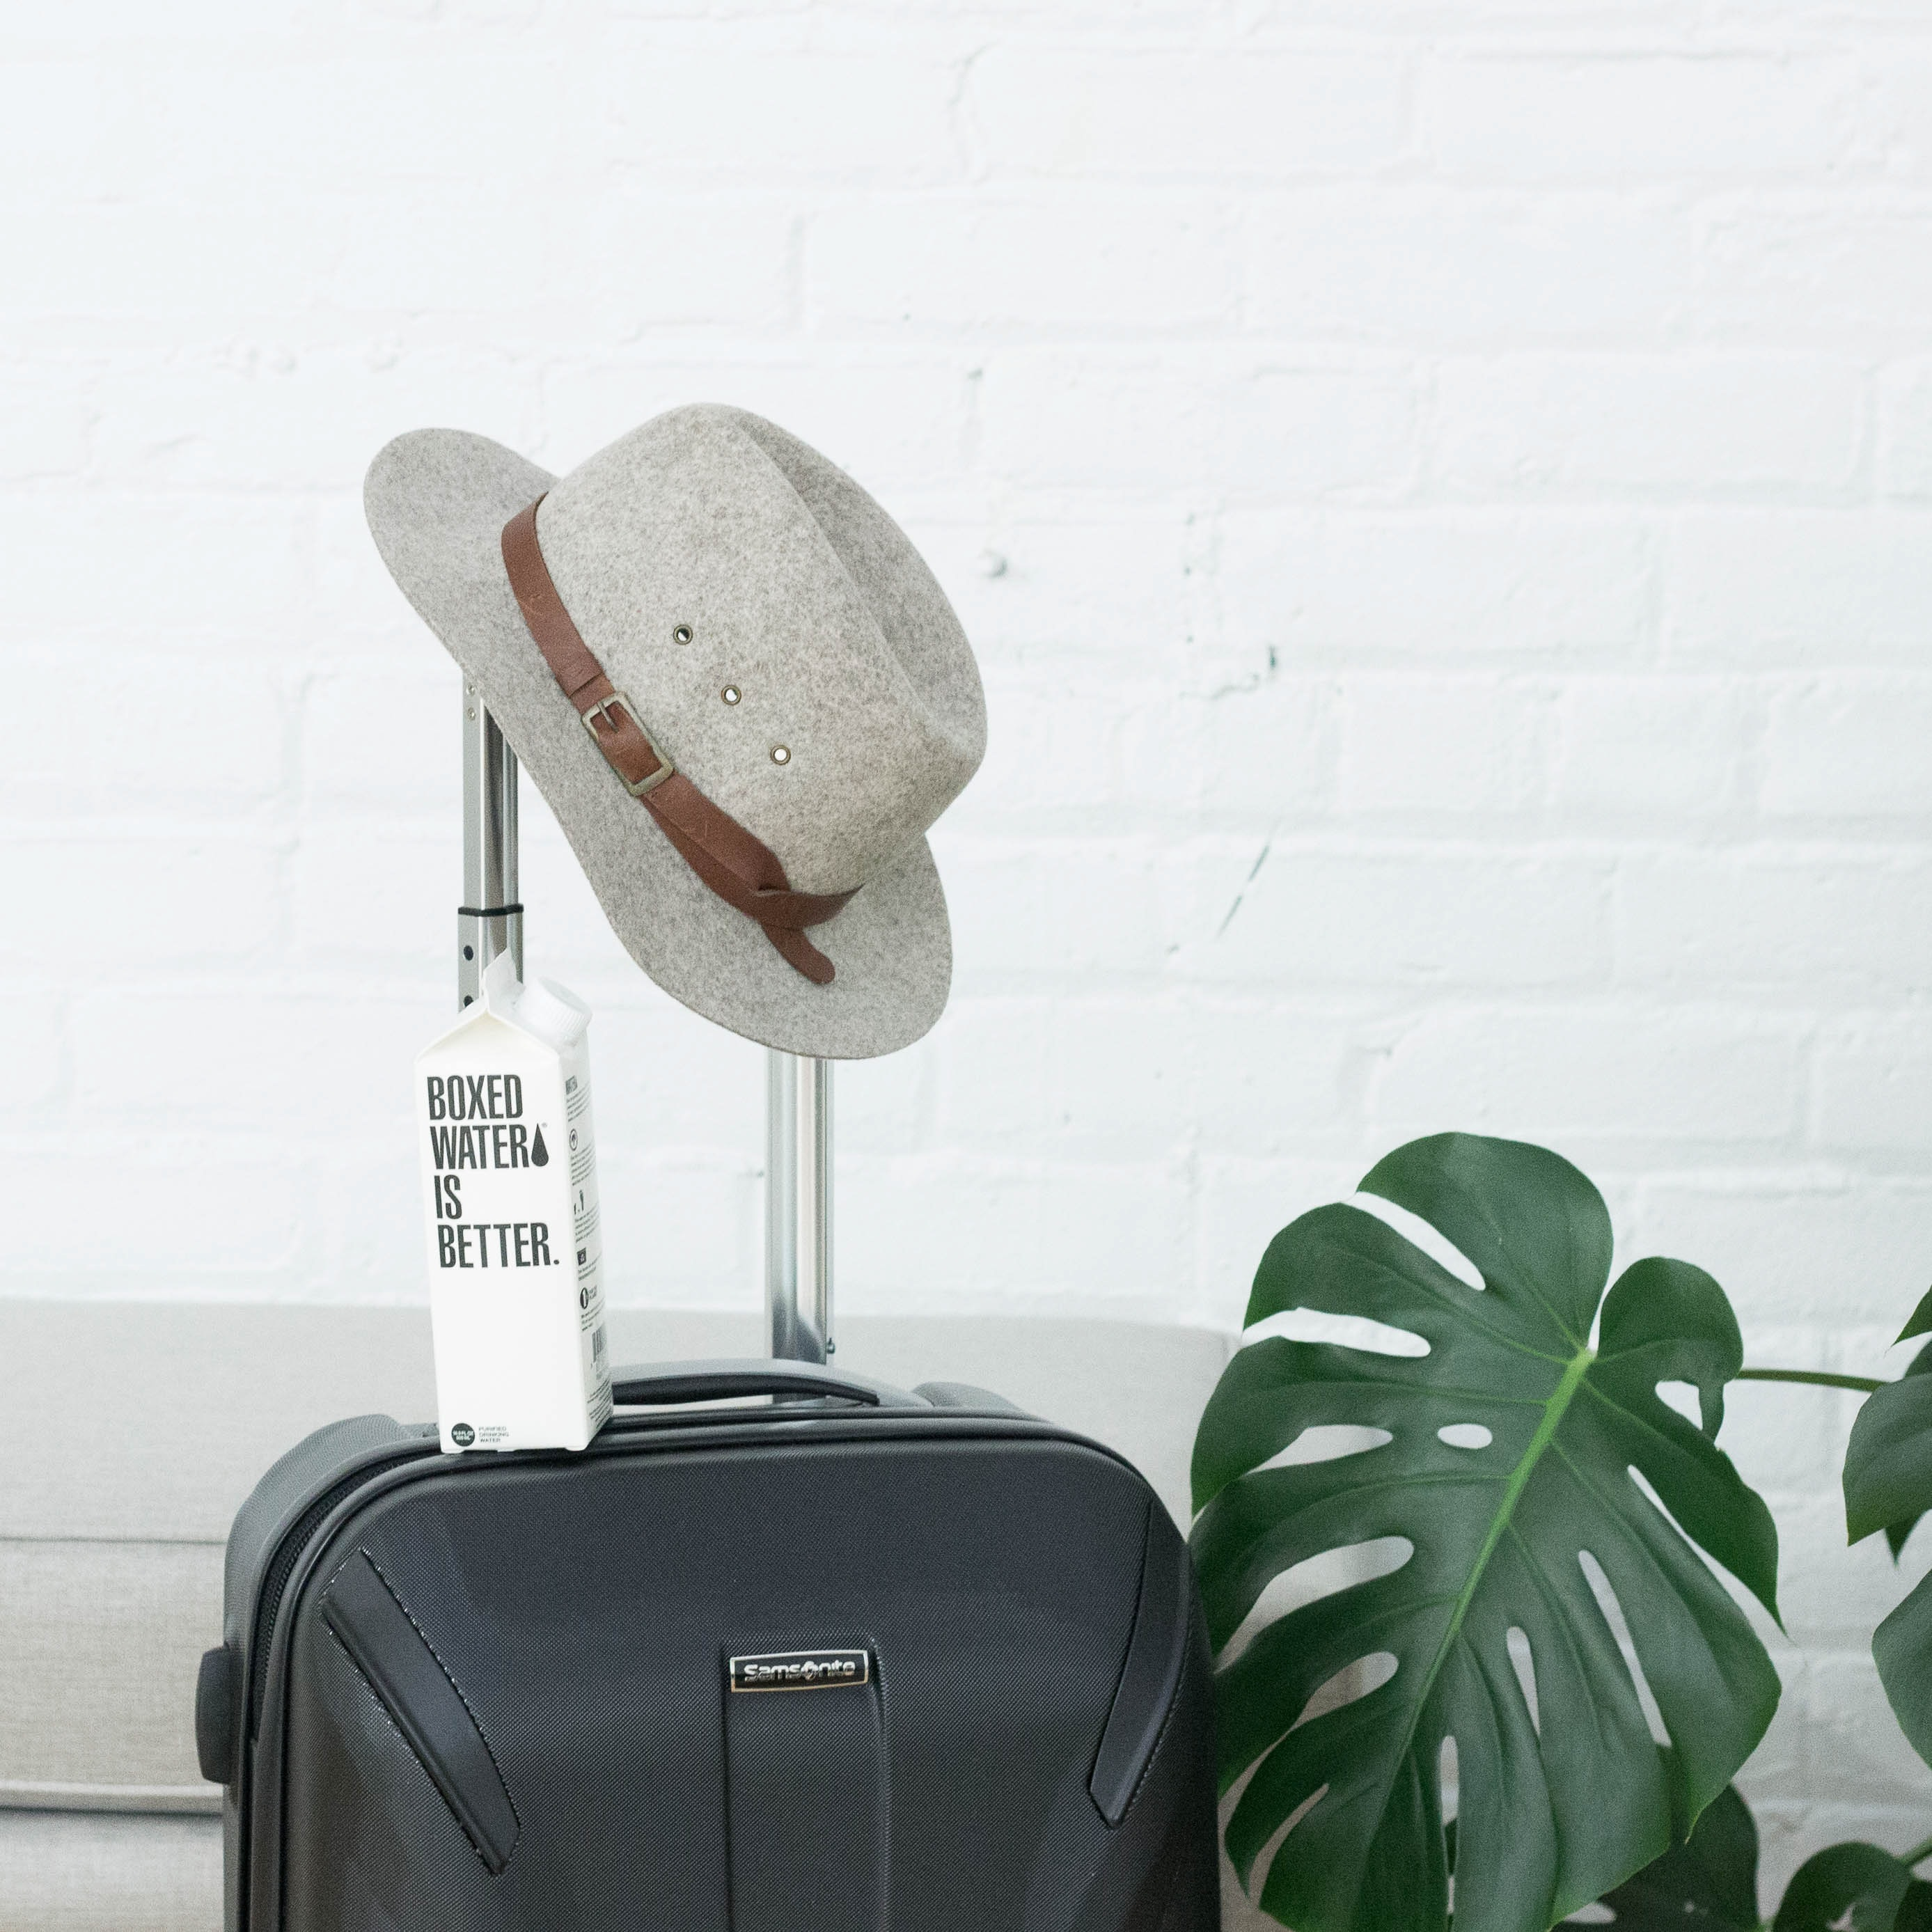 Top Technology Support Luggage Space Management Organizations of London